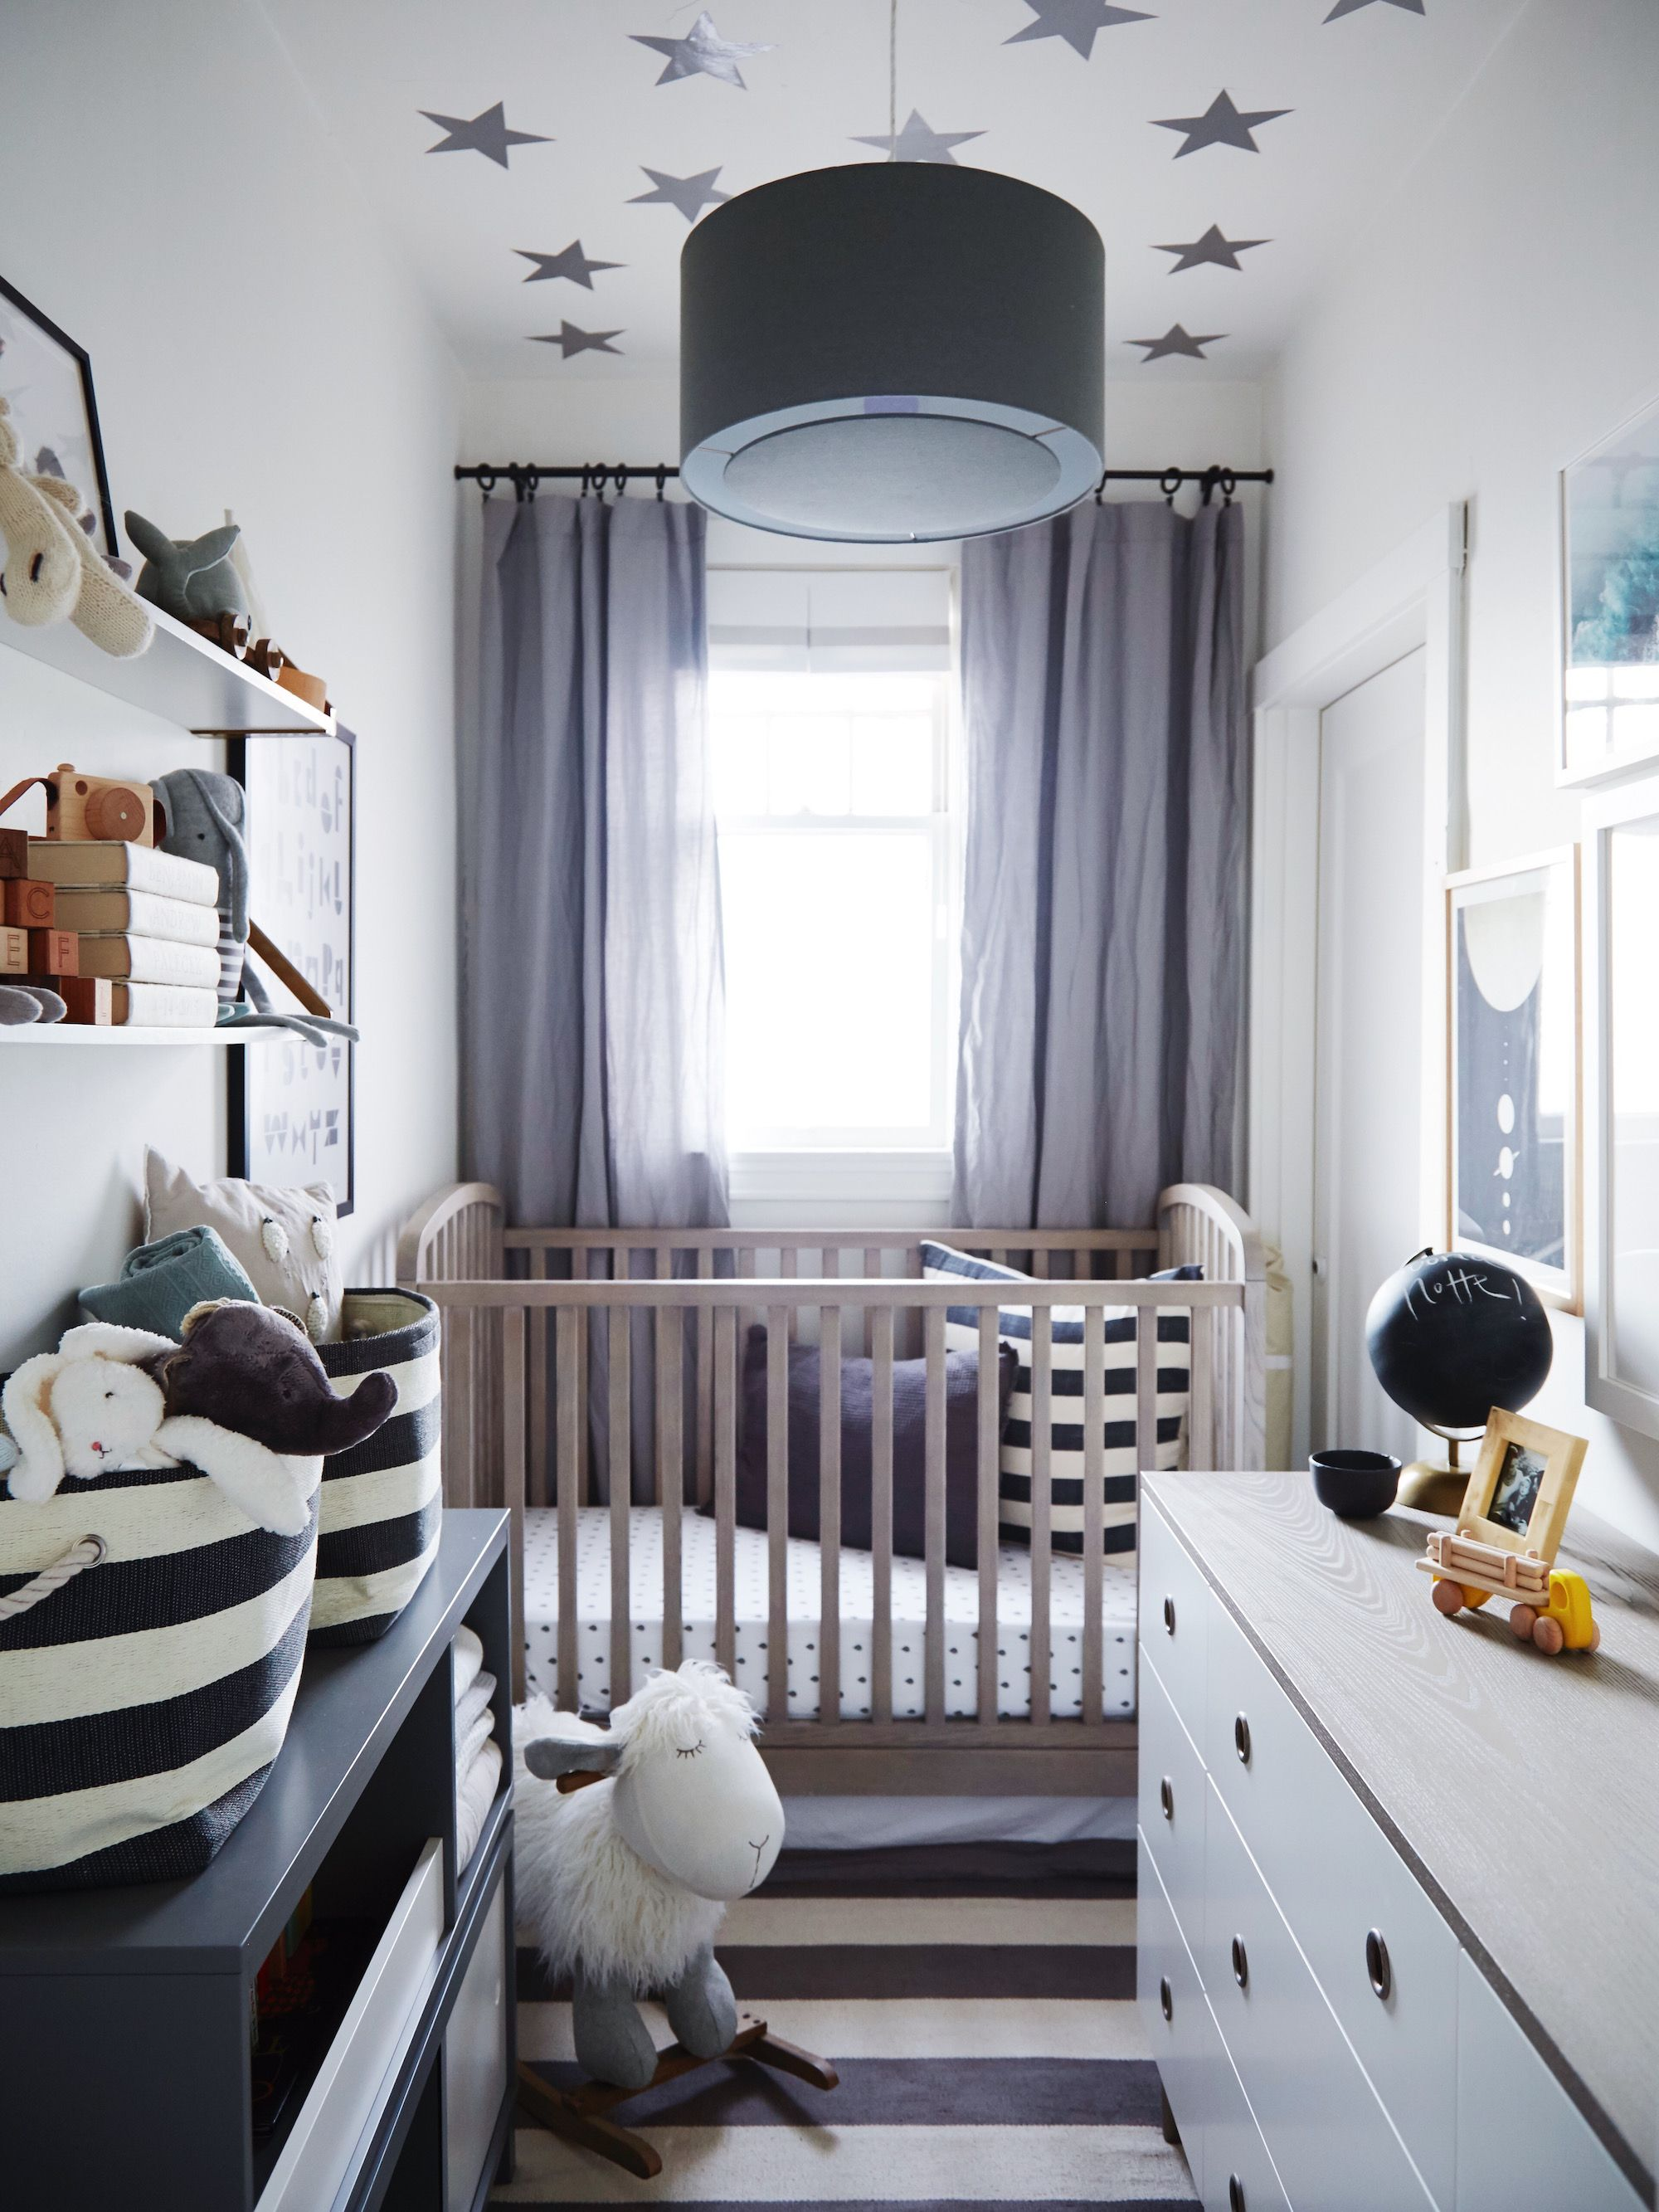 Closet Ideas For Small Spaces Bedroom Kids